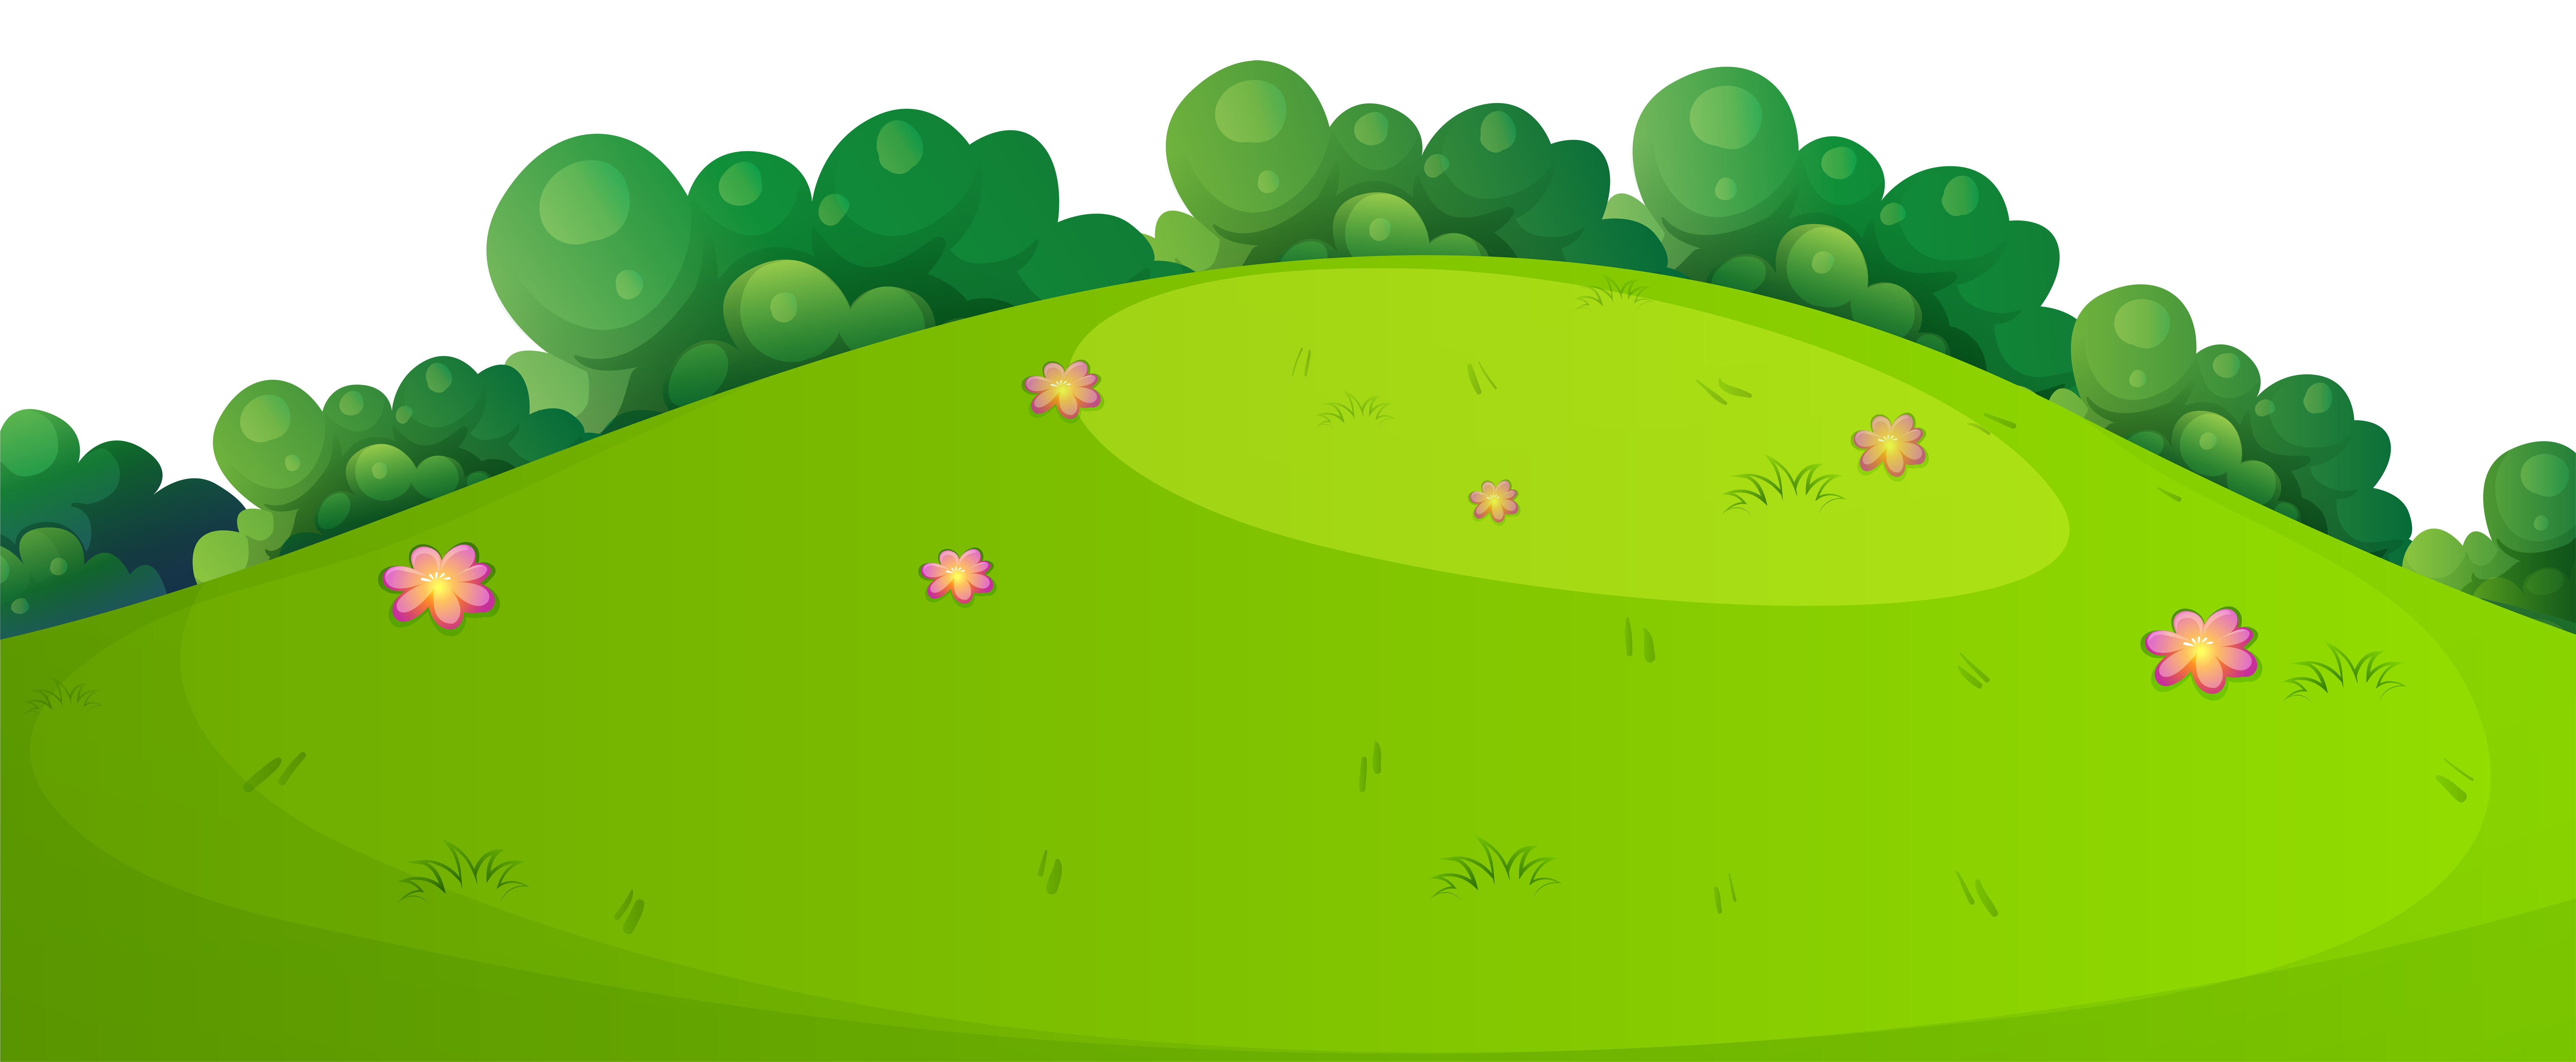 Hills clipart beautiful fence. Meadow grass ground png